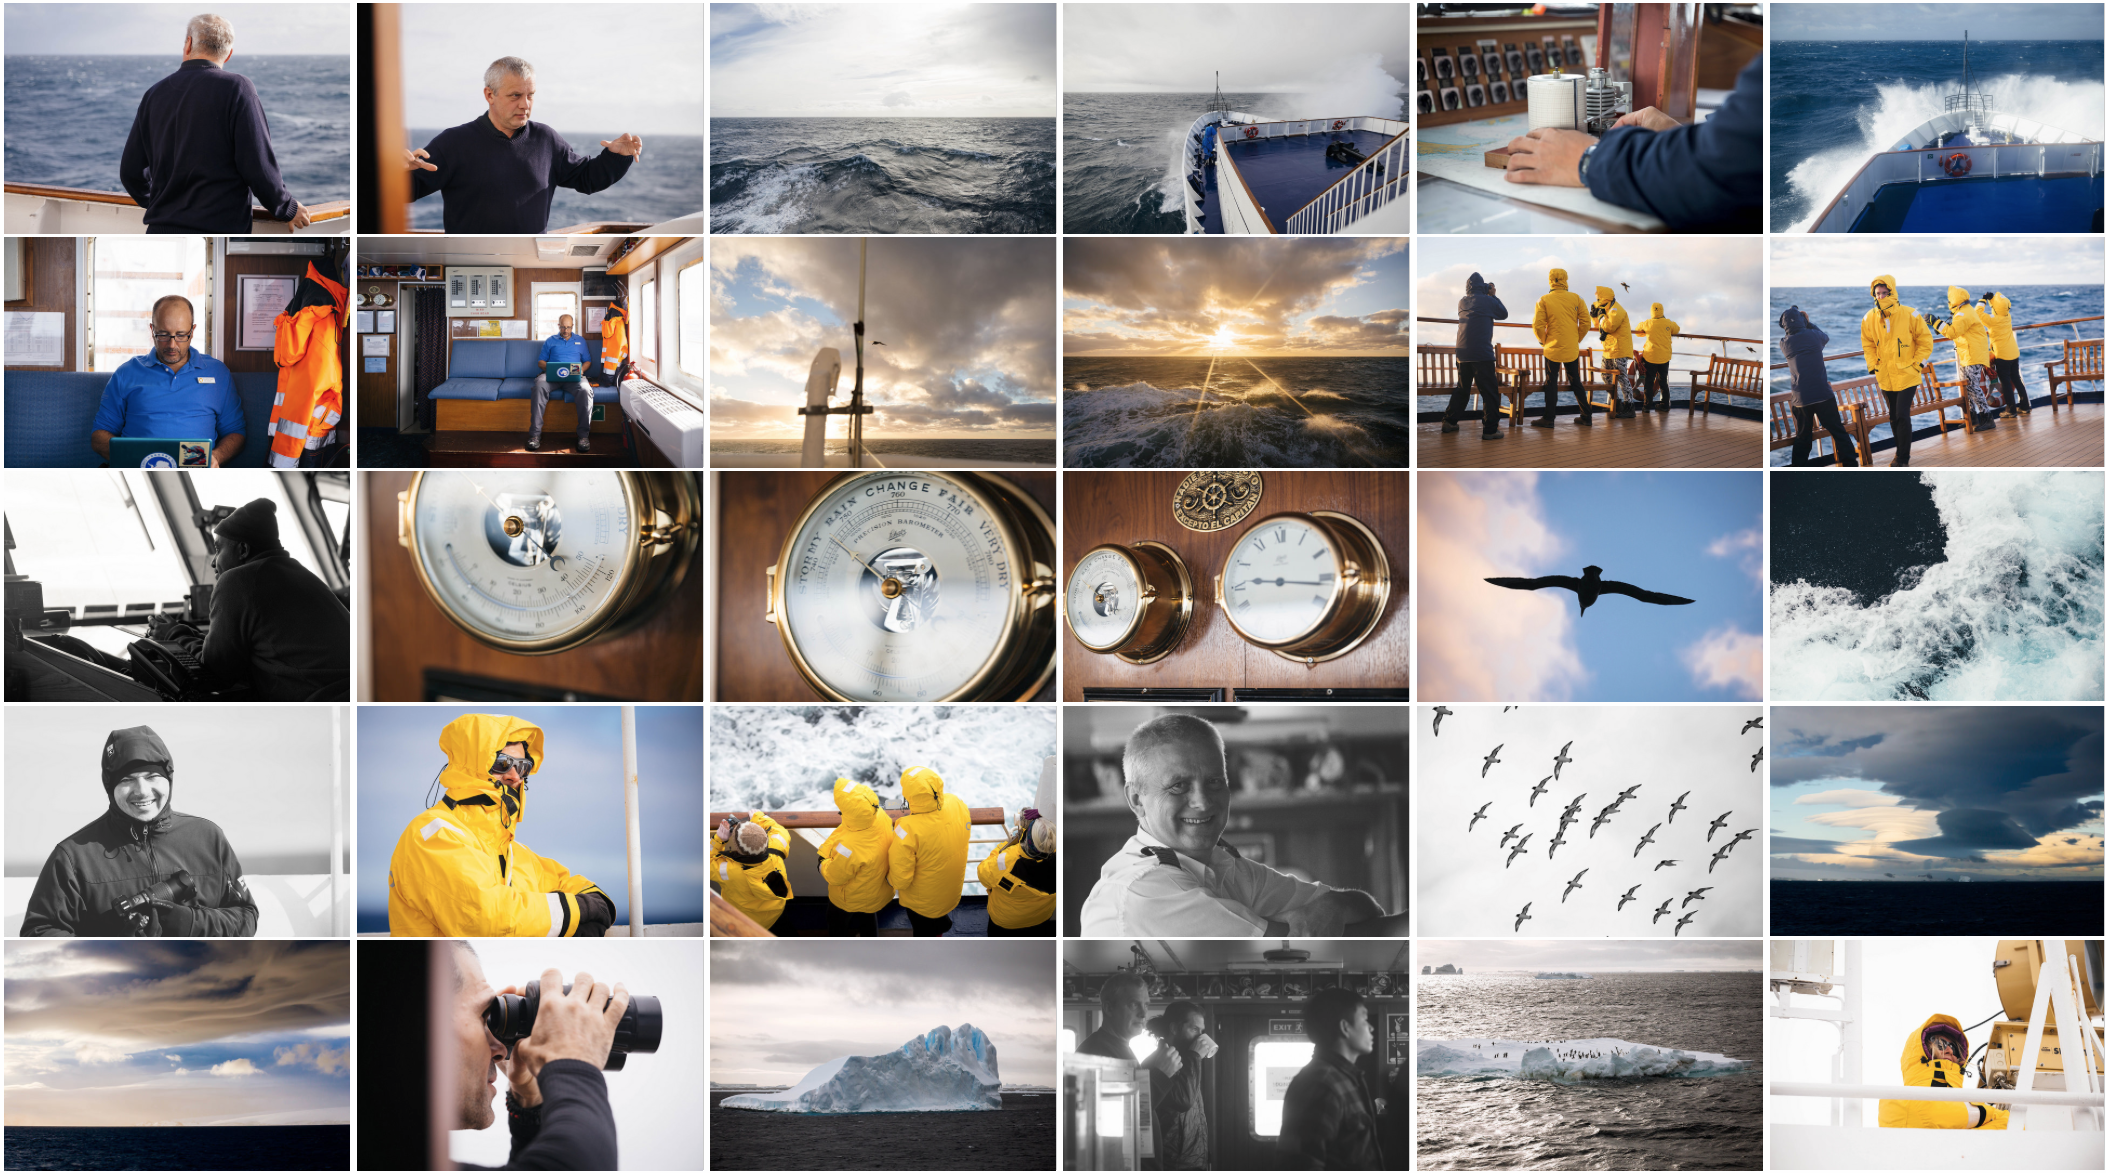 Contact Sheet of photo selects from the Drake Passage aboard the Sea Adventurer.